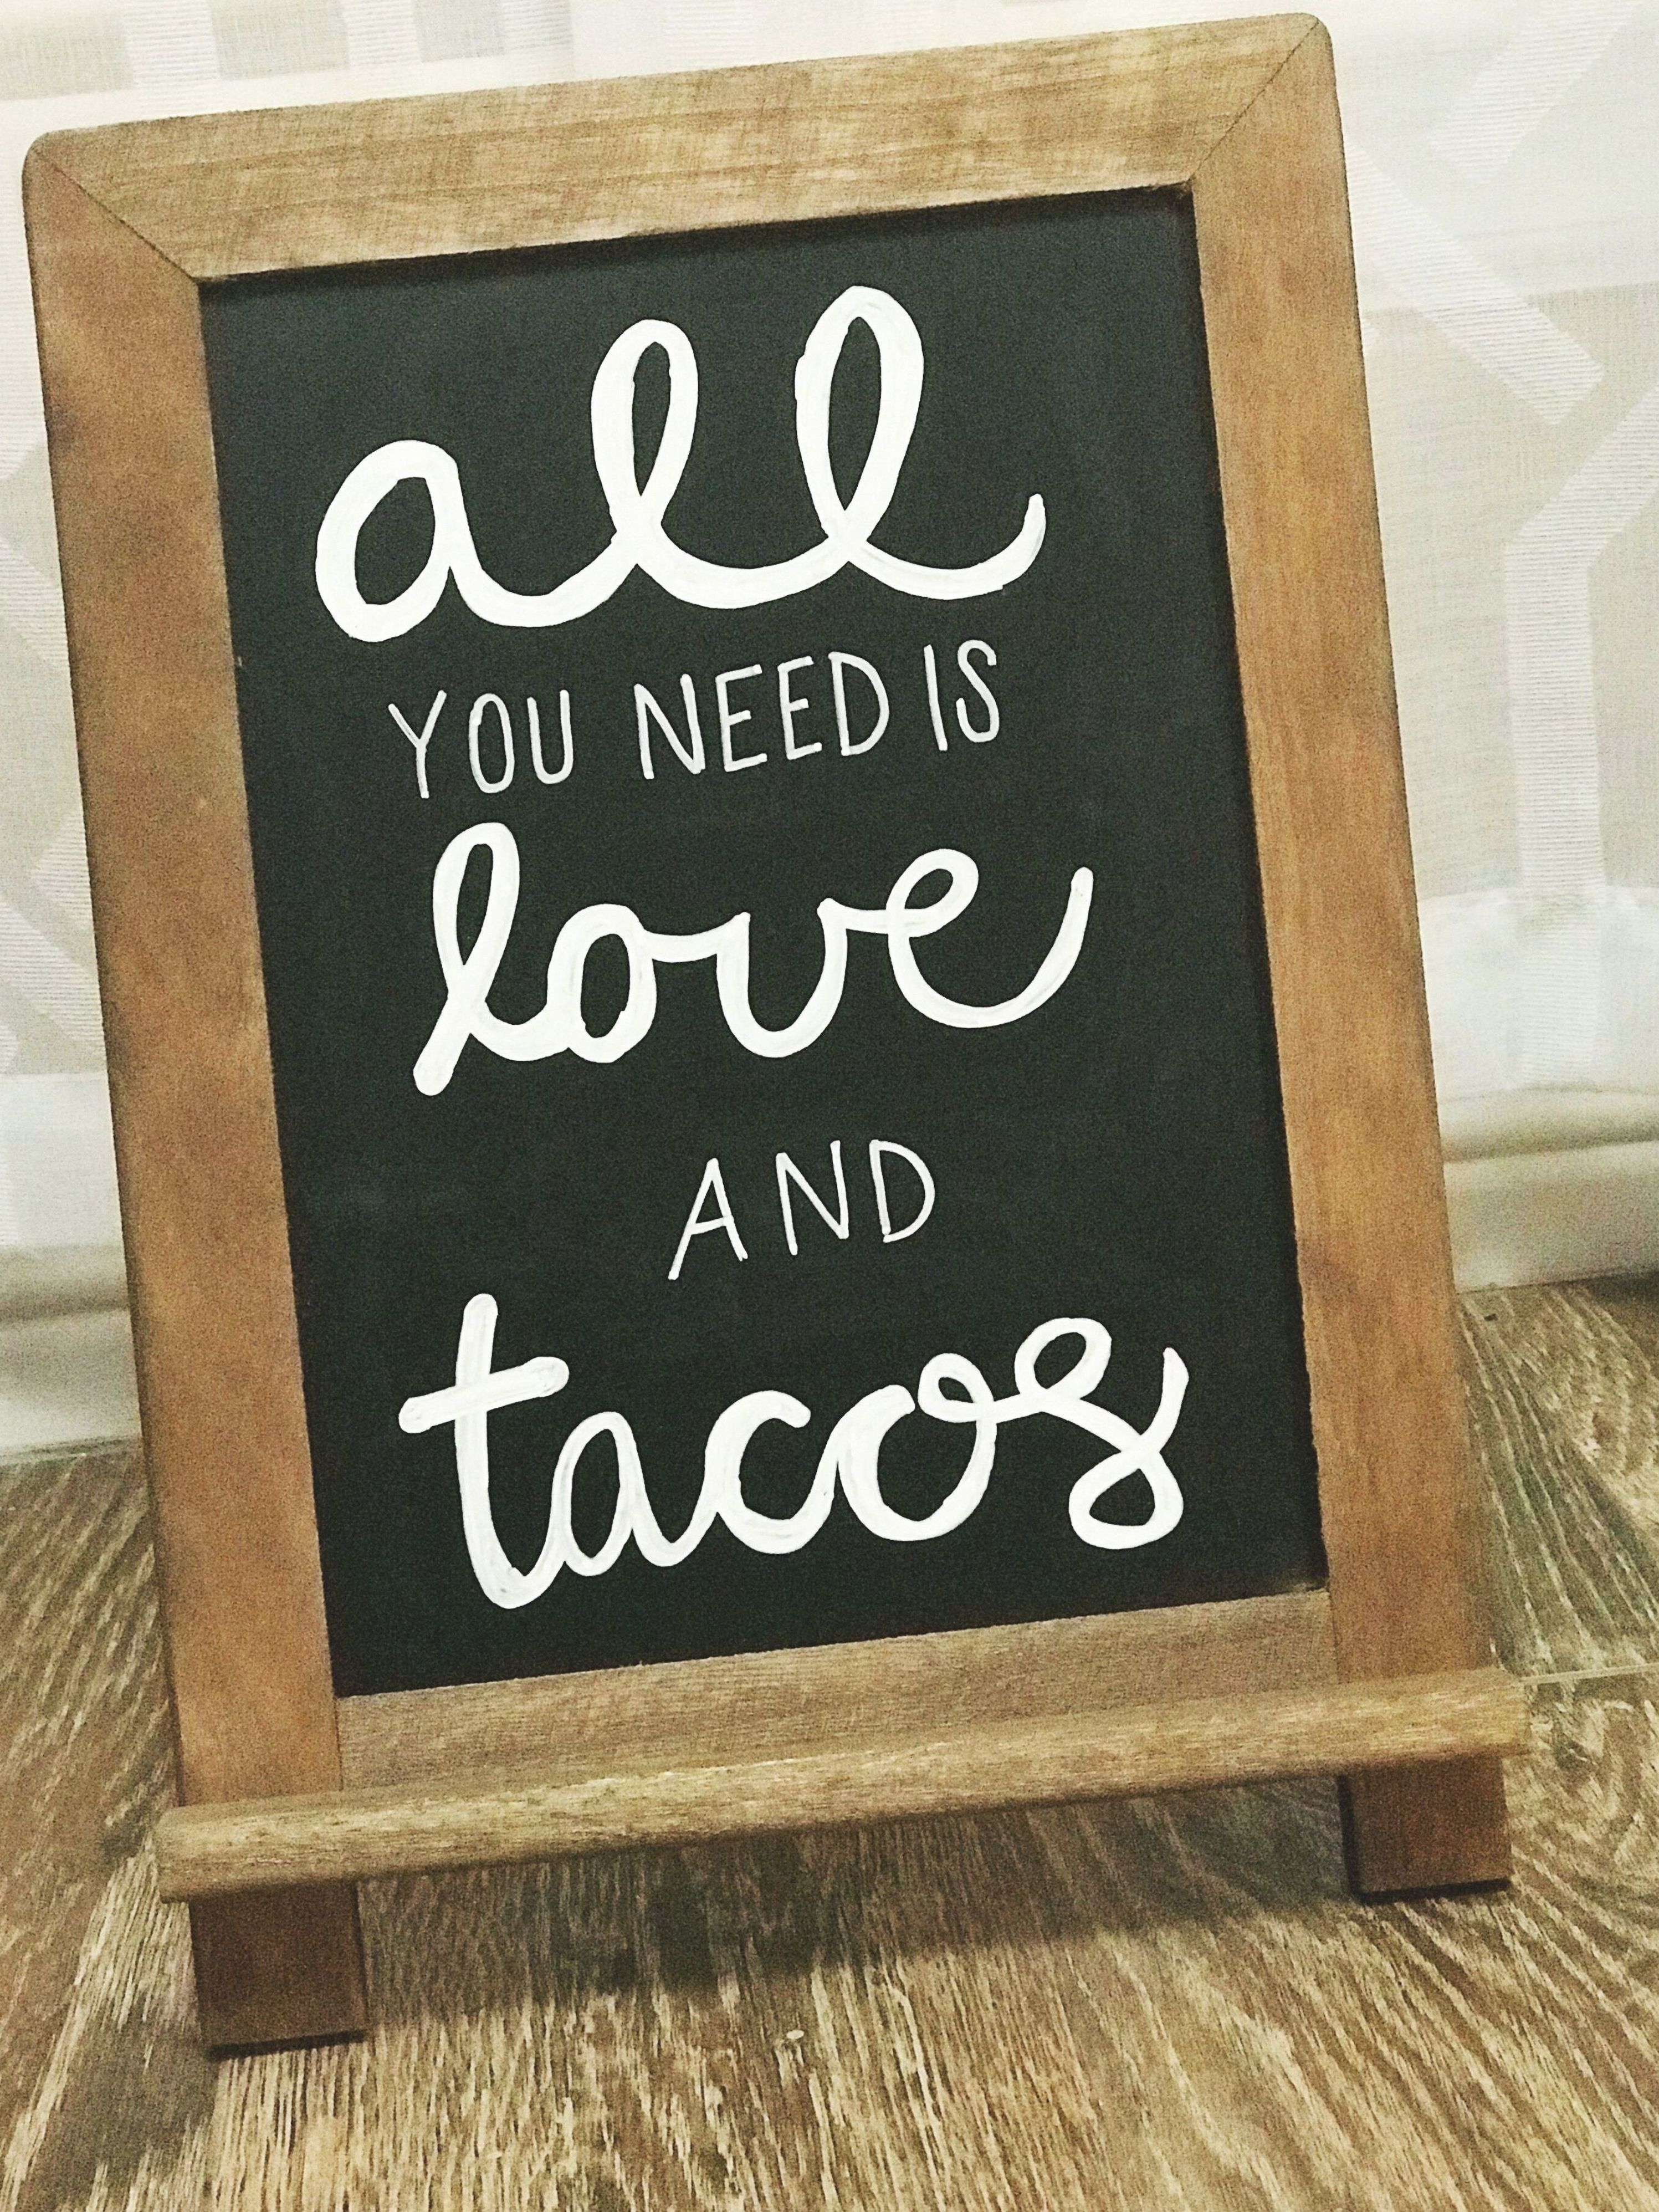 All You Need Is Love Tacos Chalkboard Bridal Shower Fiesta Engagement Party F Mexican Fiesta Bridal Shower Fiesta Theme Bridal Shower Wedding Shower Themes